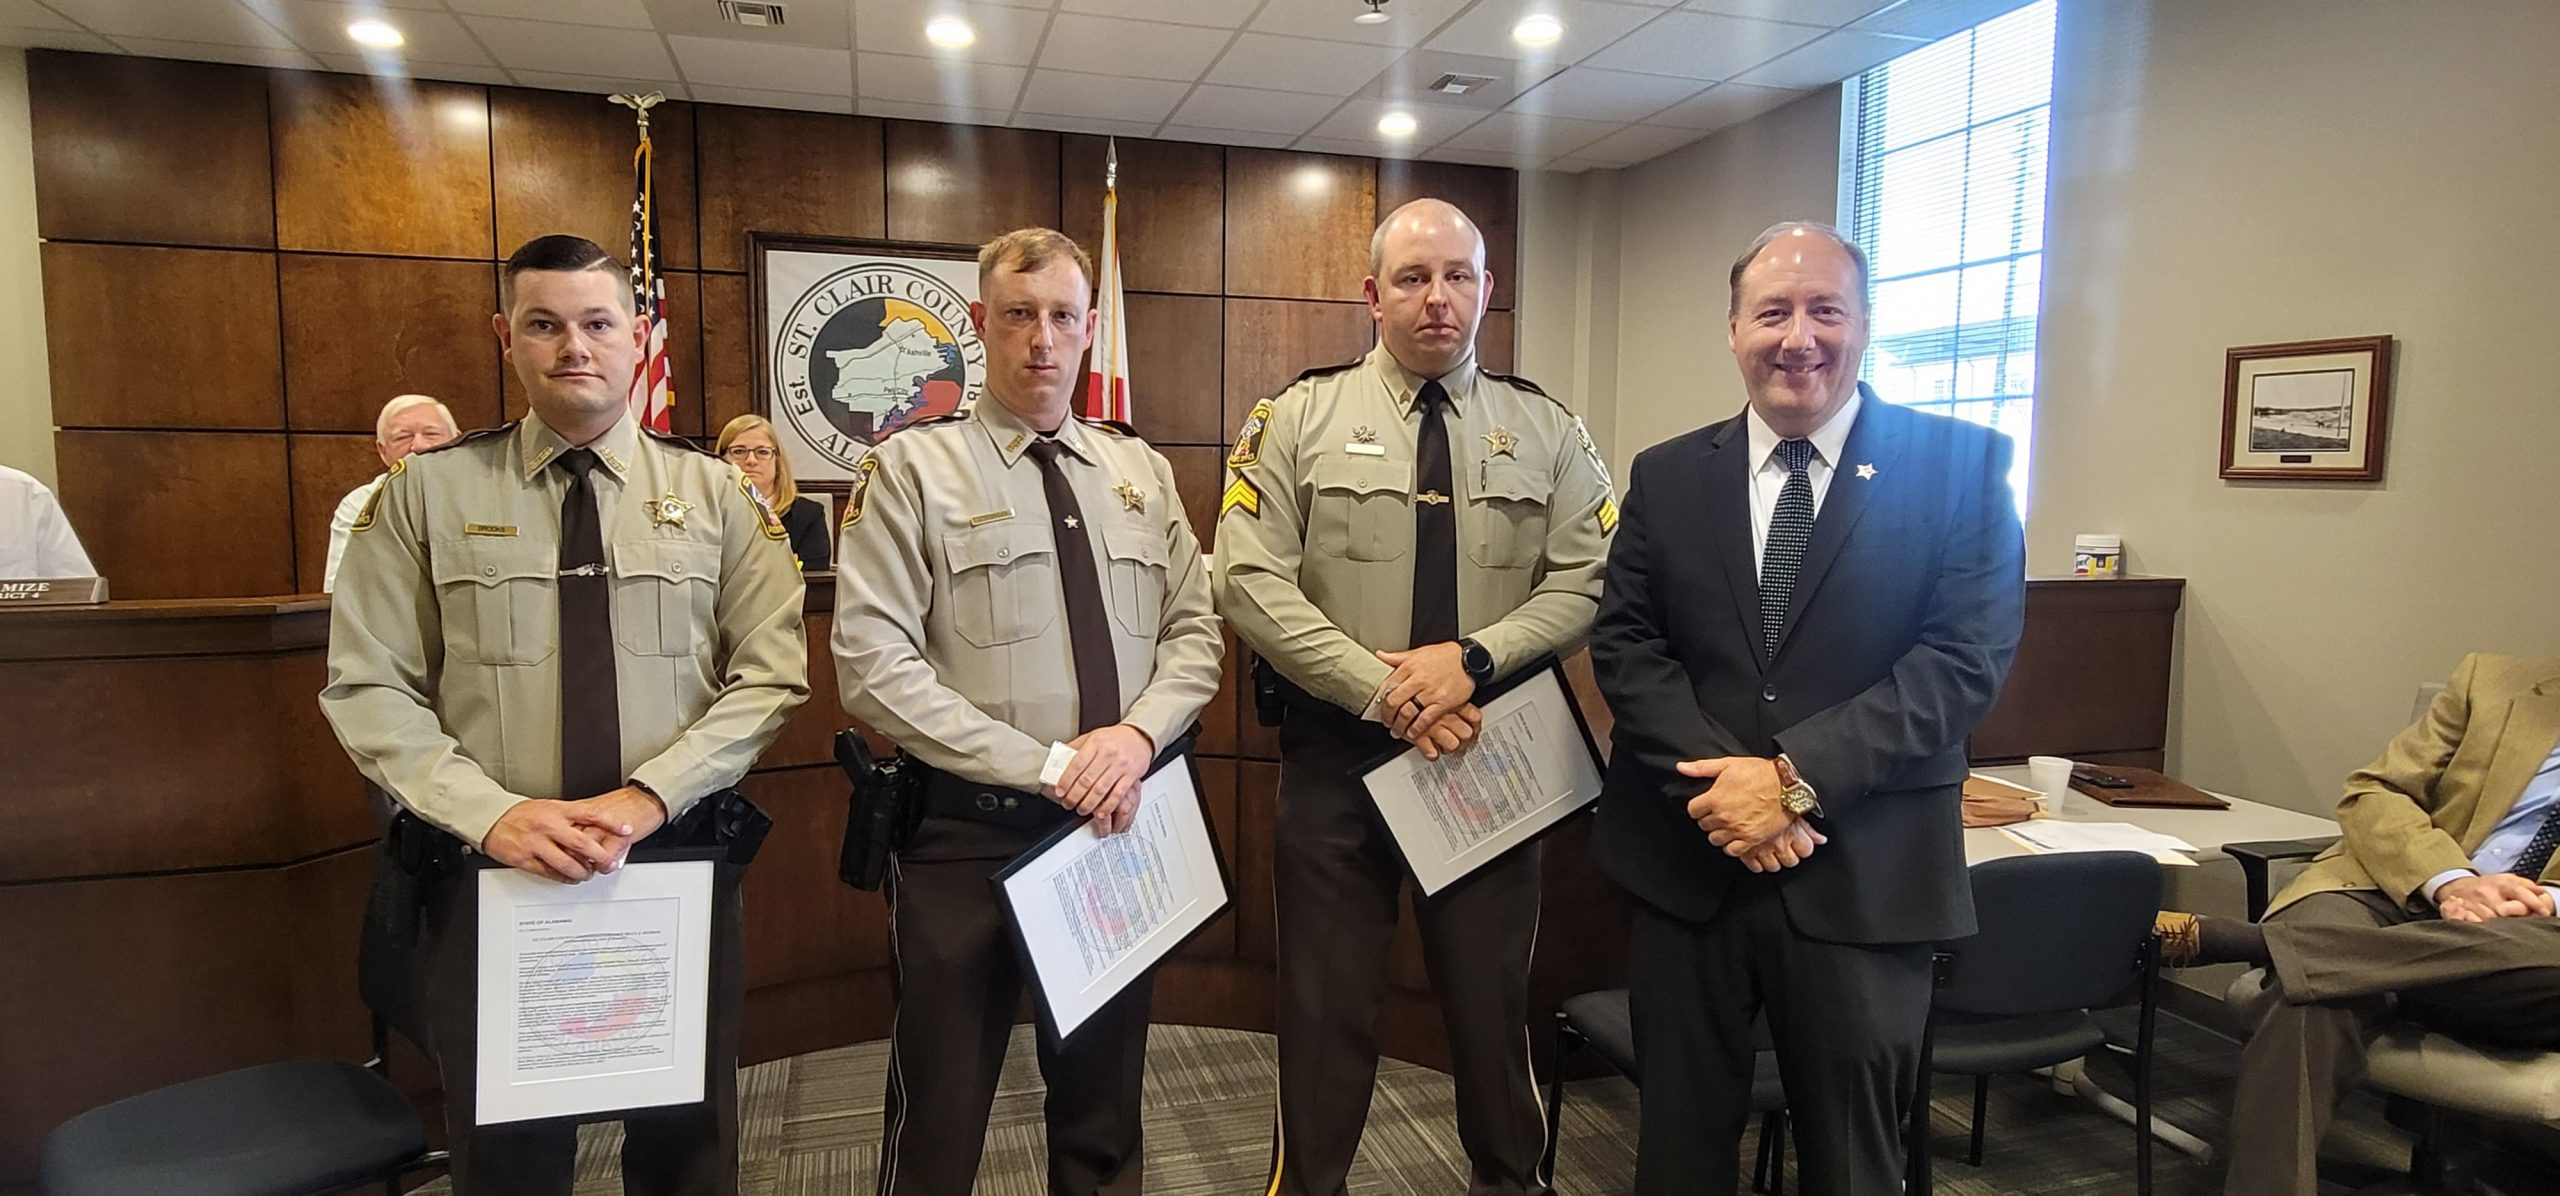 St. Clair County Deputies honored for 'selfless acts of bravery' after pulling family out of submerged SUV